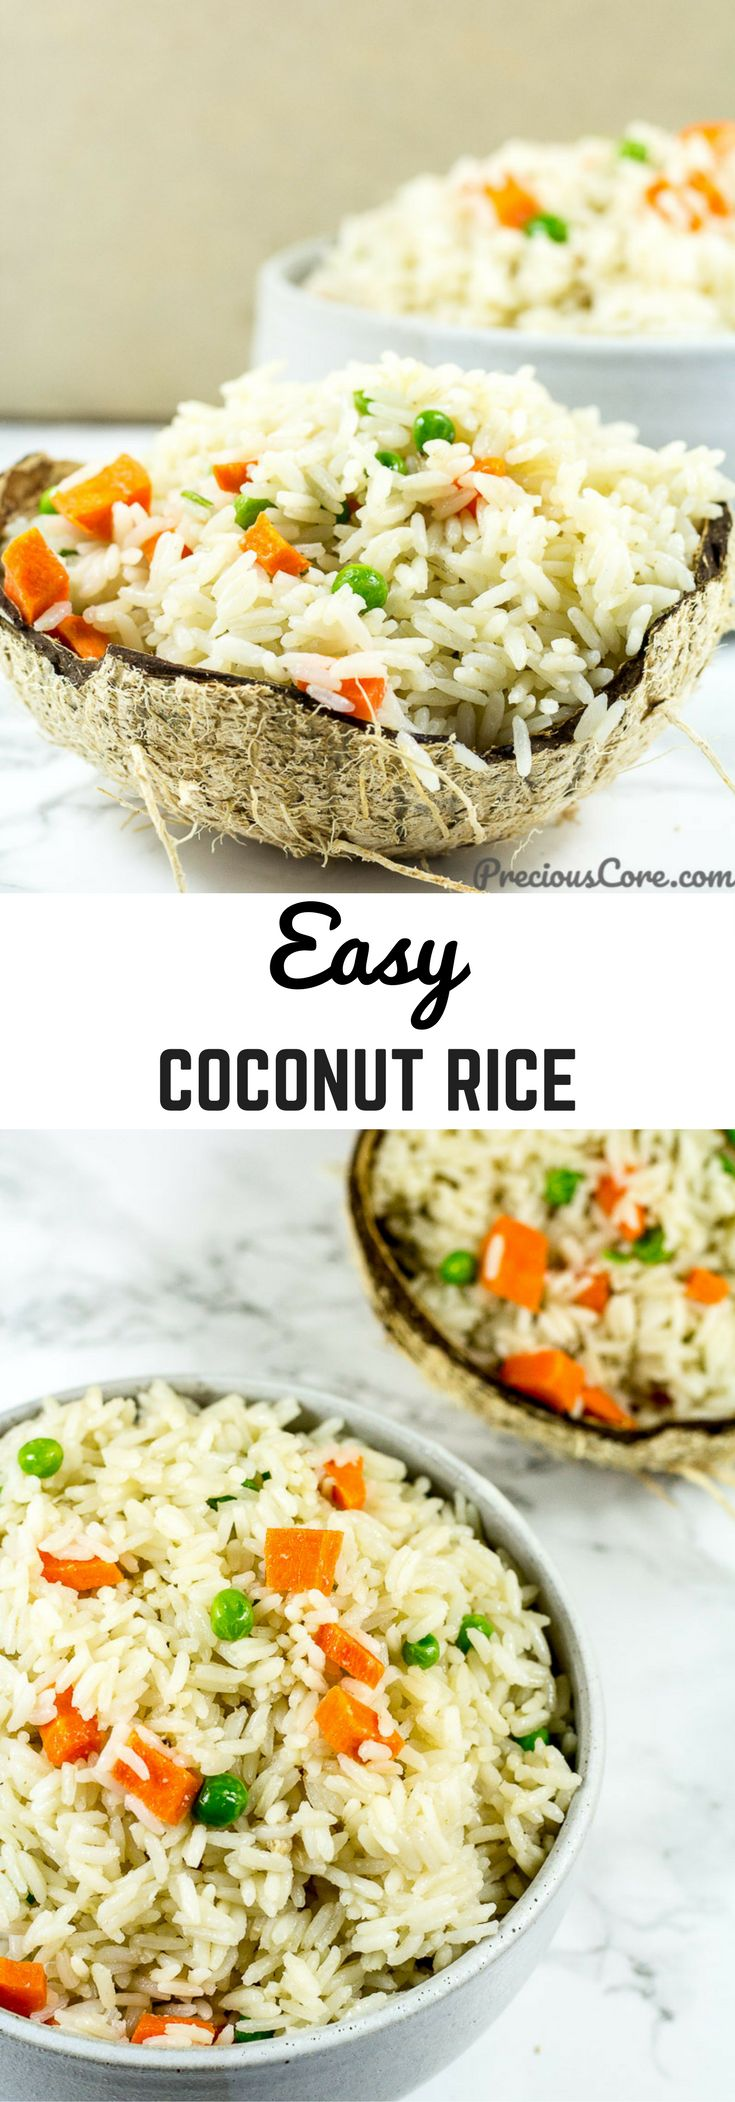 This easy coconut rice only requires 5 ingredients and about 20 minutes. The perfect side dish for stews or curries! Enjoy this simple coconut rice recipe on PreciousCore.com.